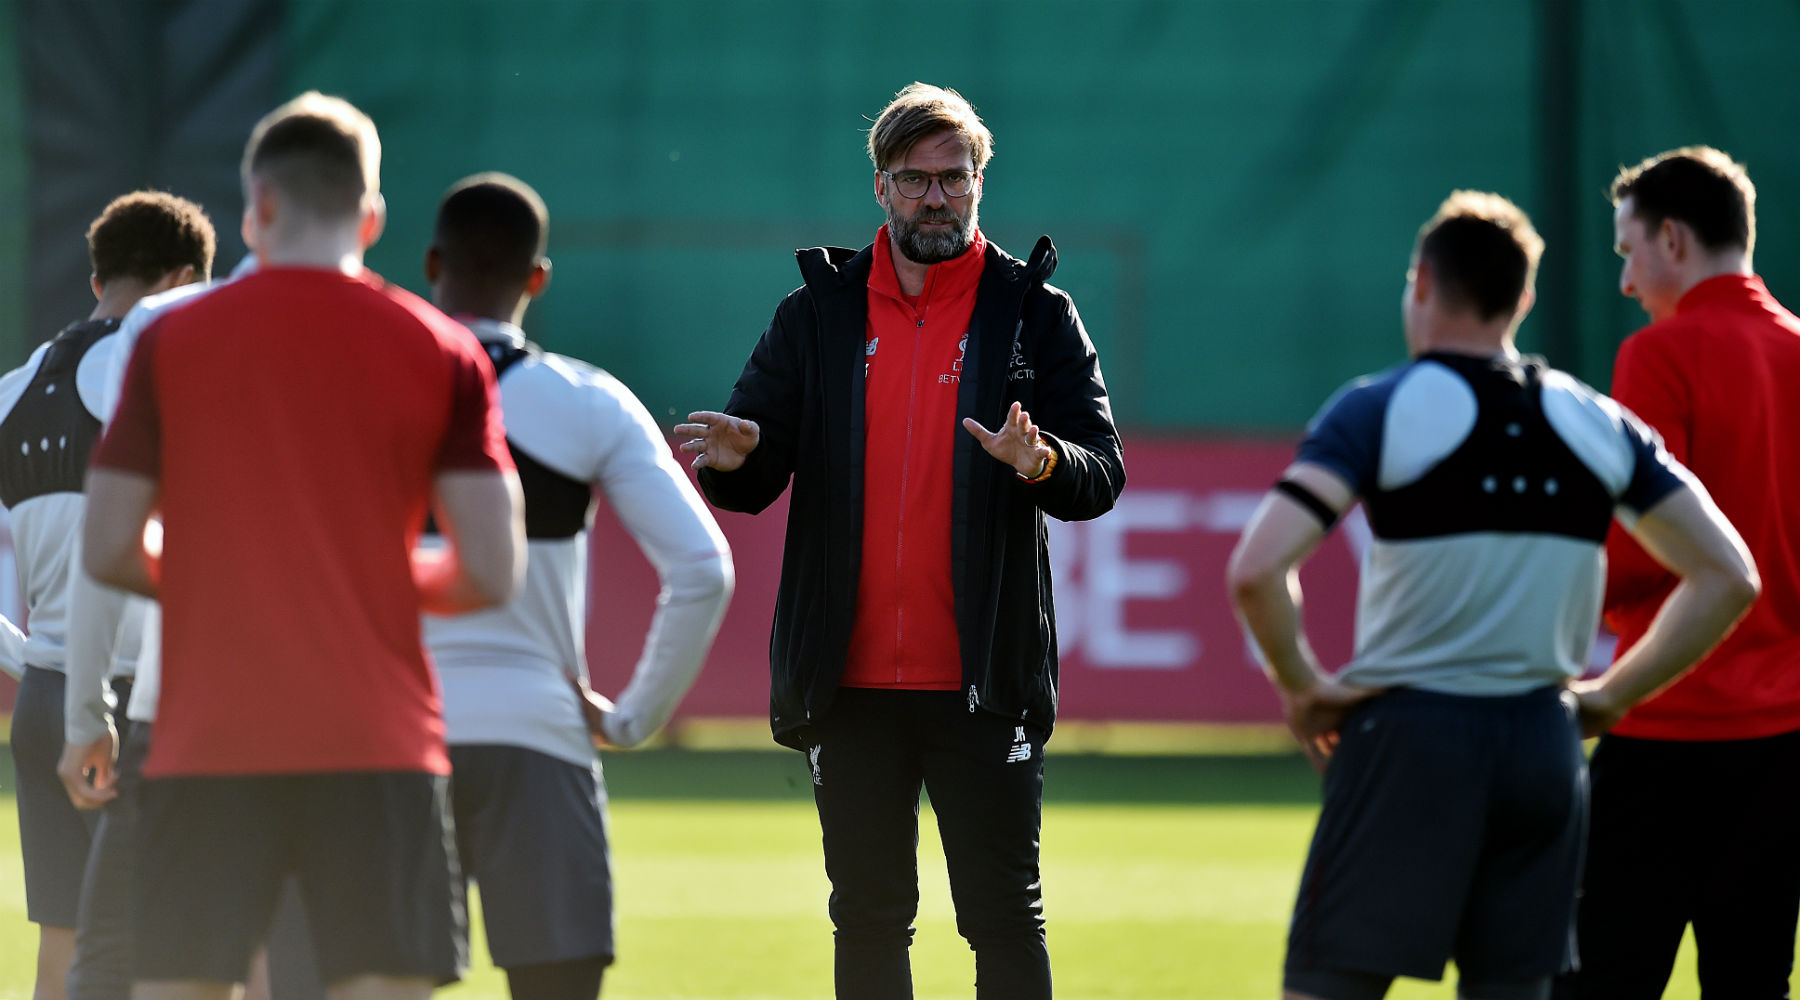 Liverpool boss Jurgen Klopp sent Premier League warning amid Champions League hype